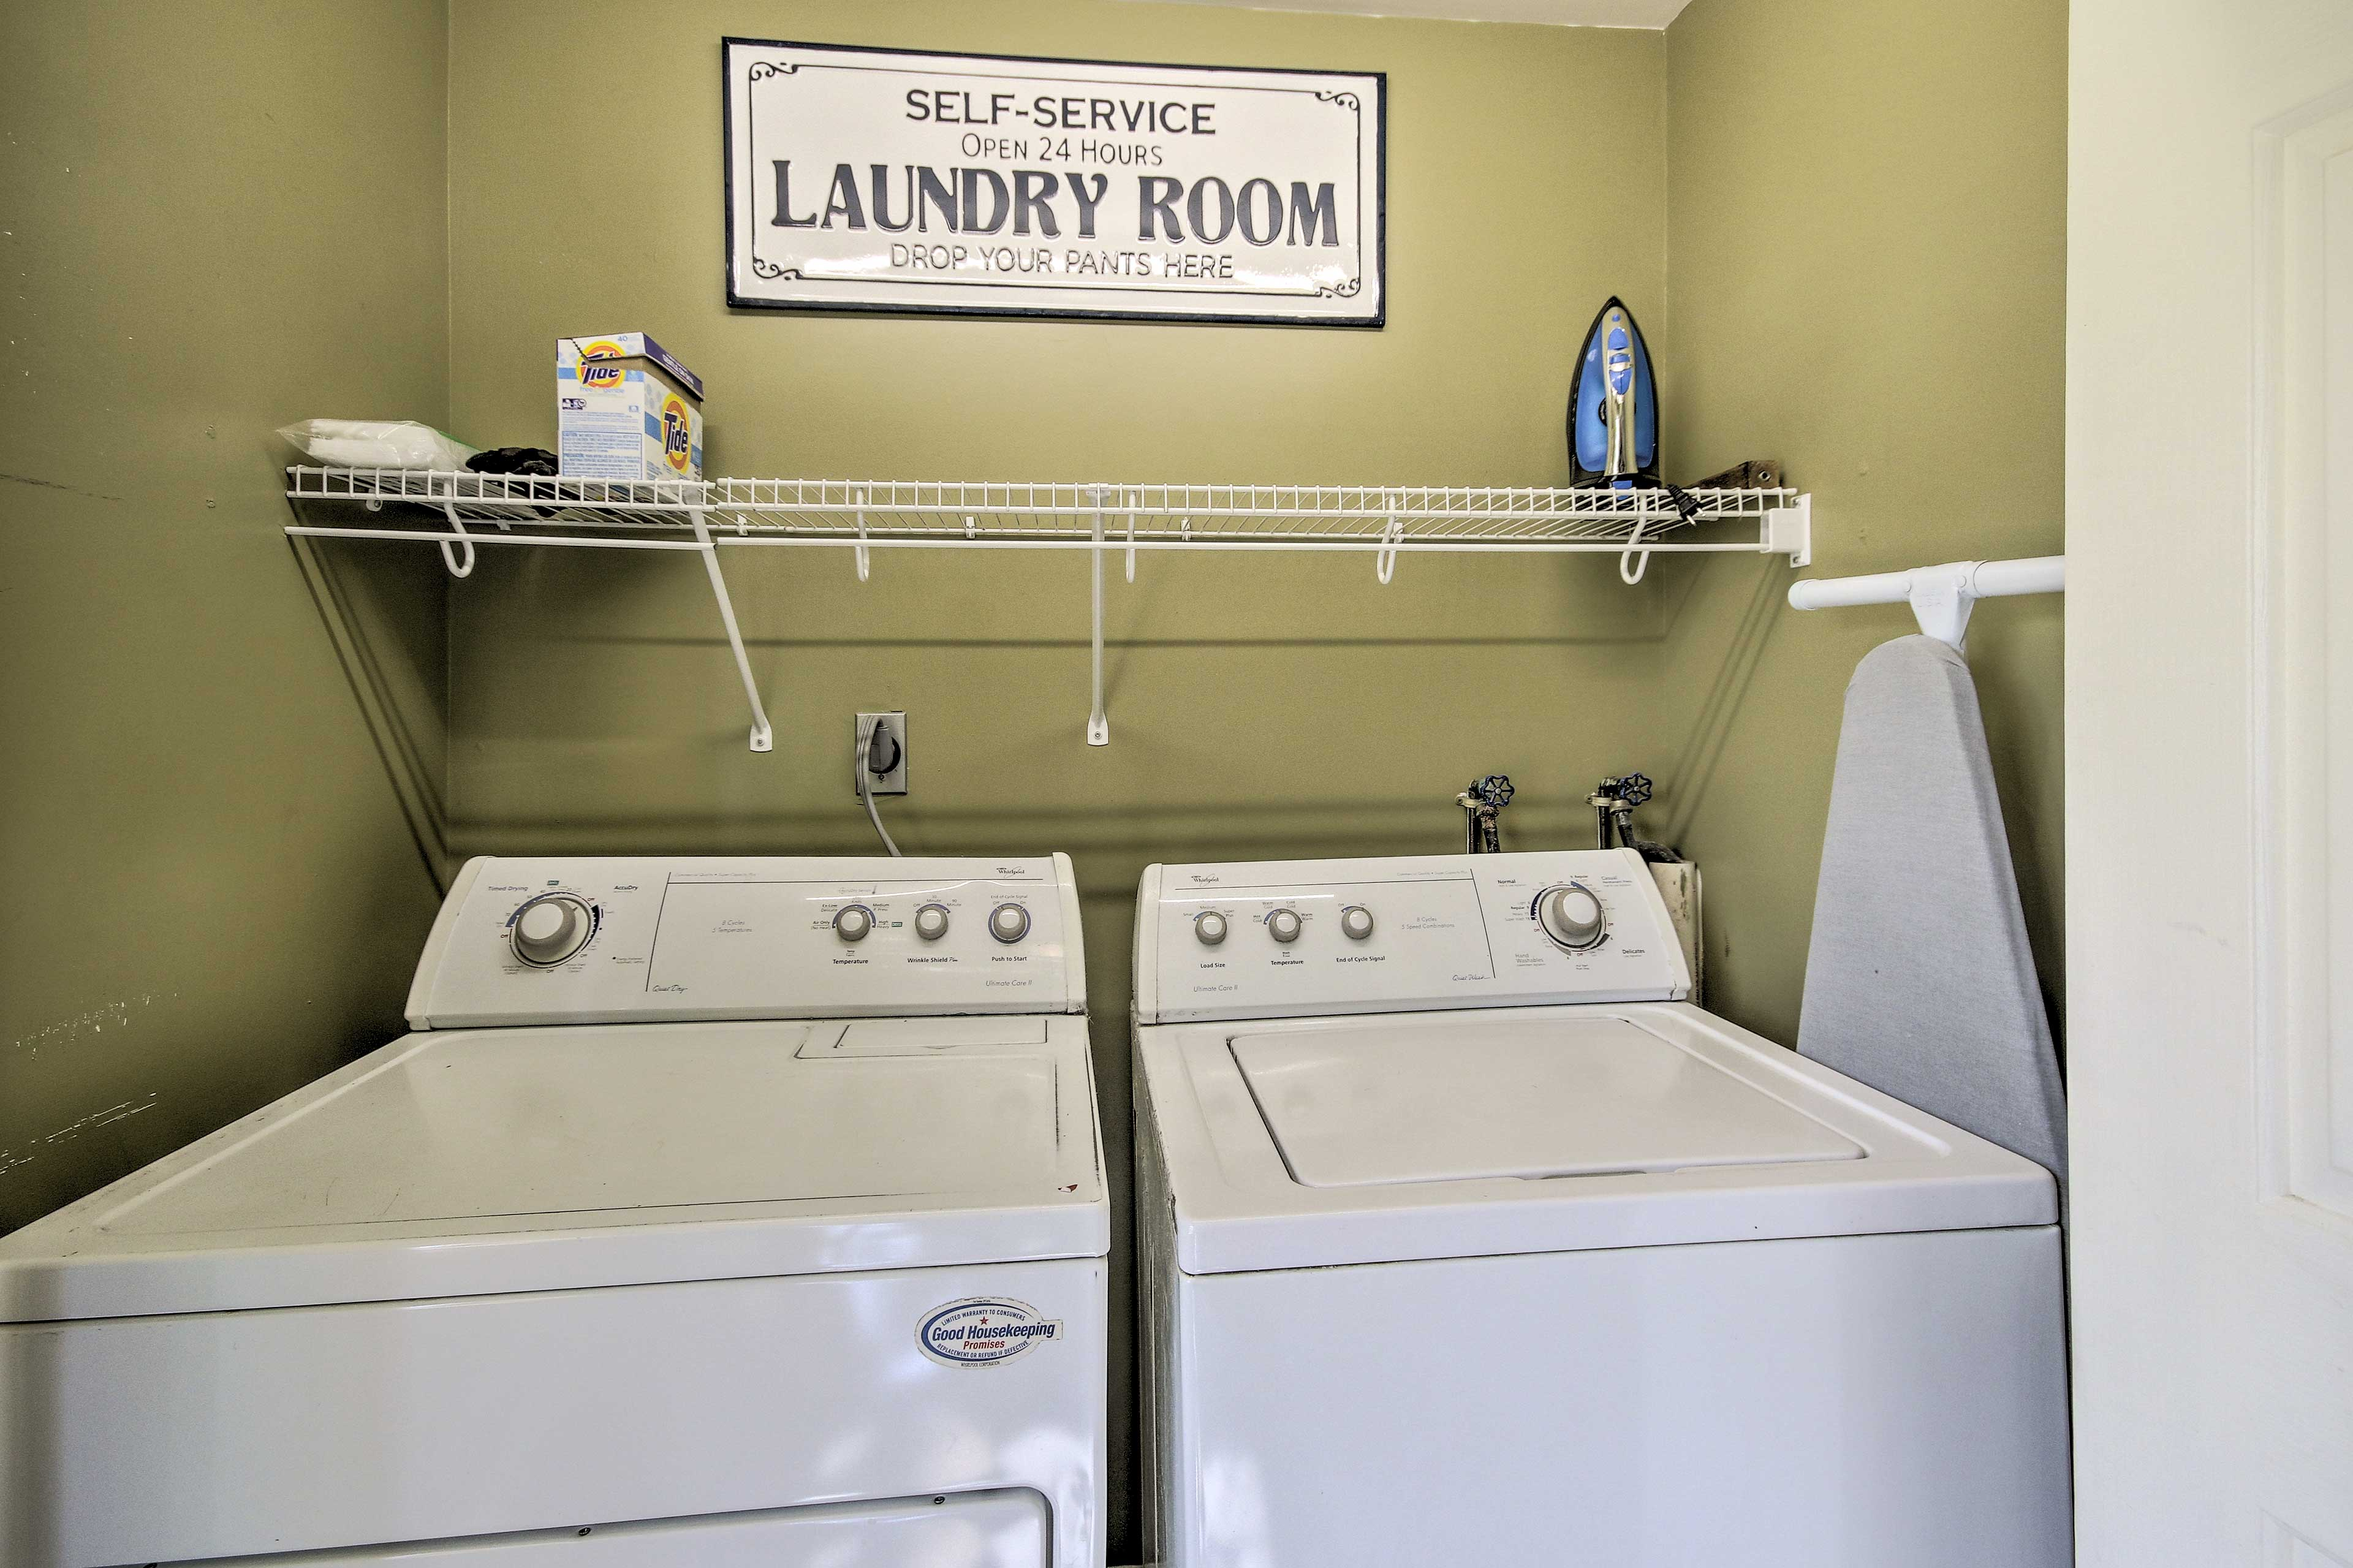 Keep clothes fresh with these full laundry machines.